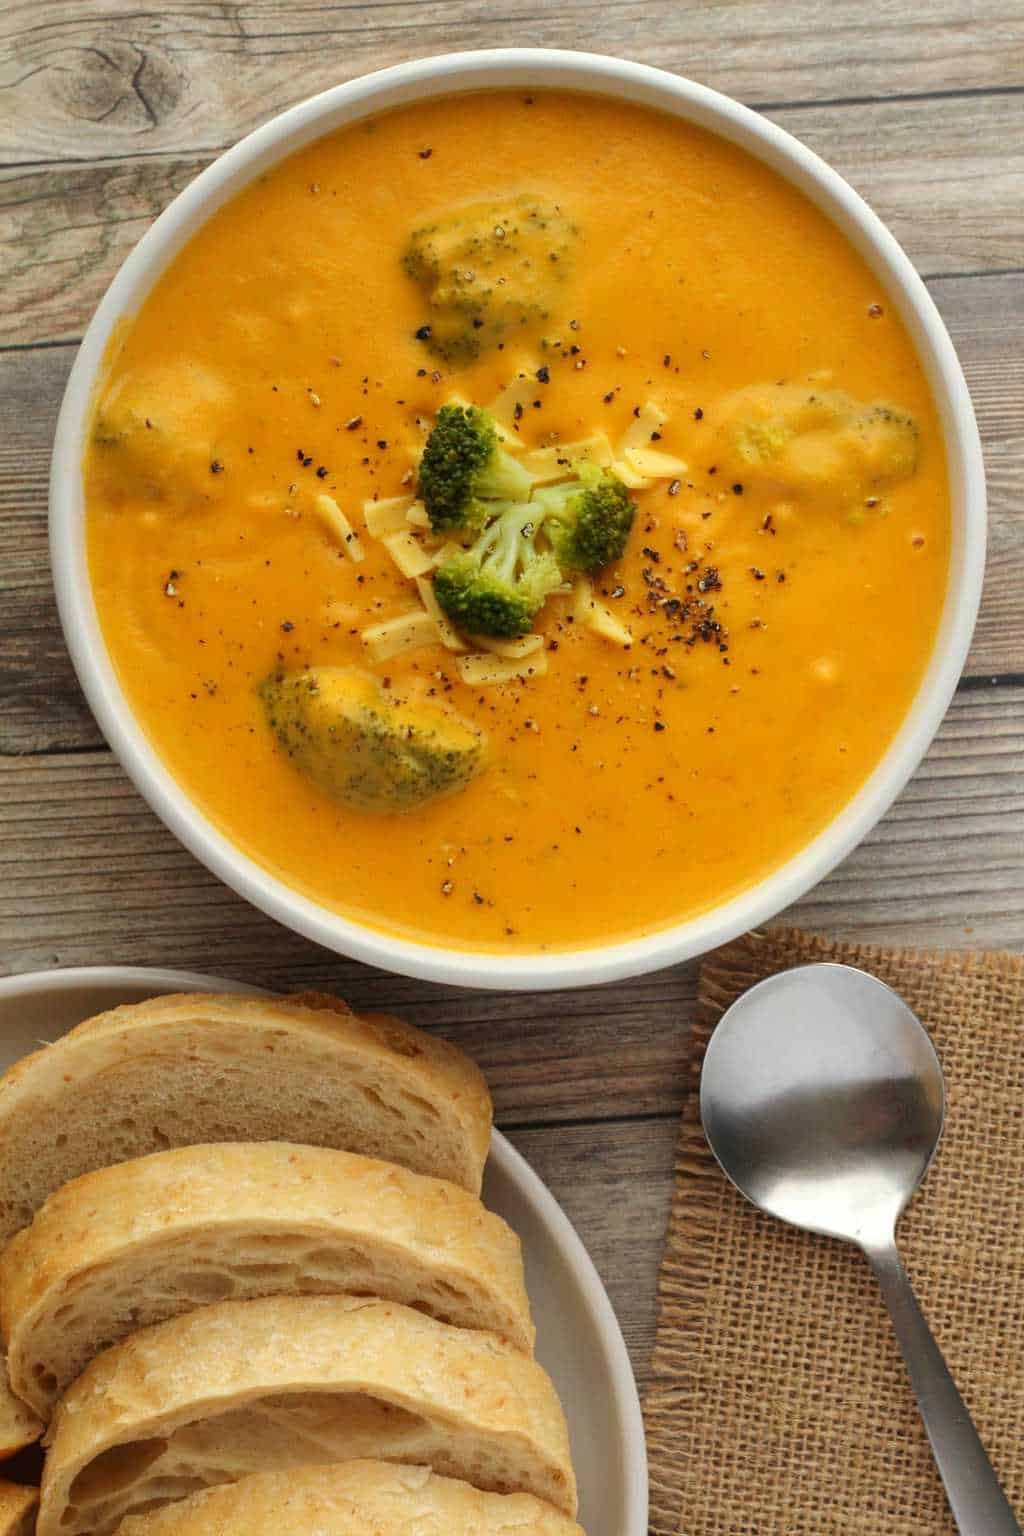 Vegan Broccoli Cheese Soup topped with grated vegan cheese and black pepper in a white bowl.